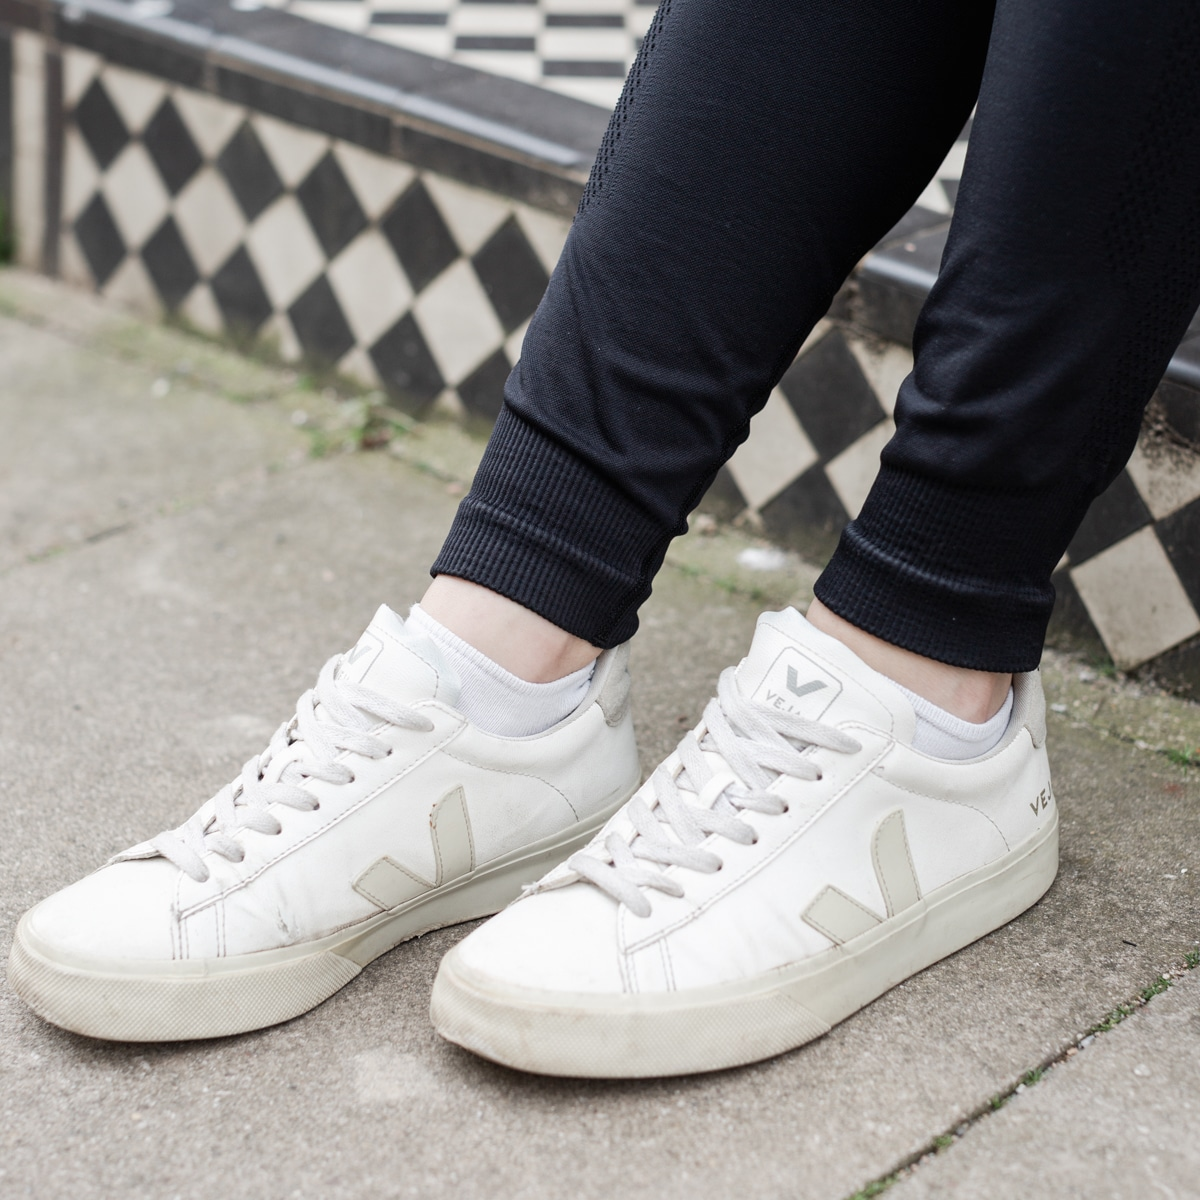 Close-up of Veja Sneakers